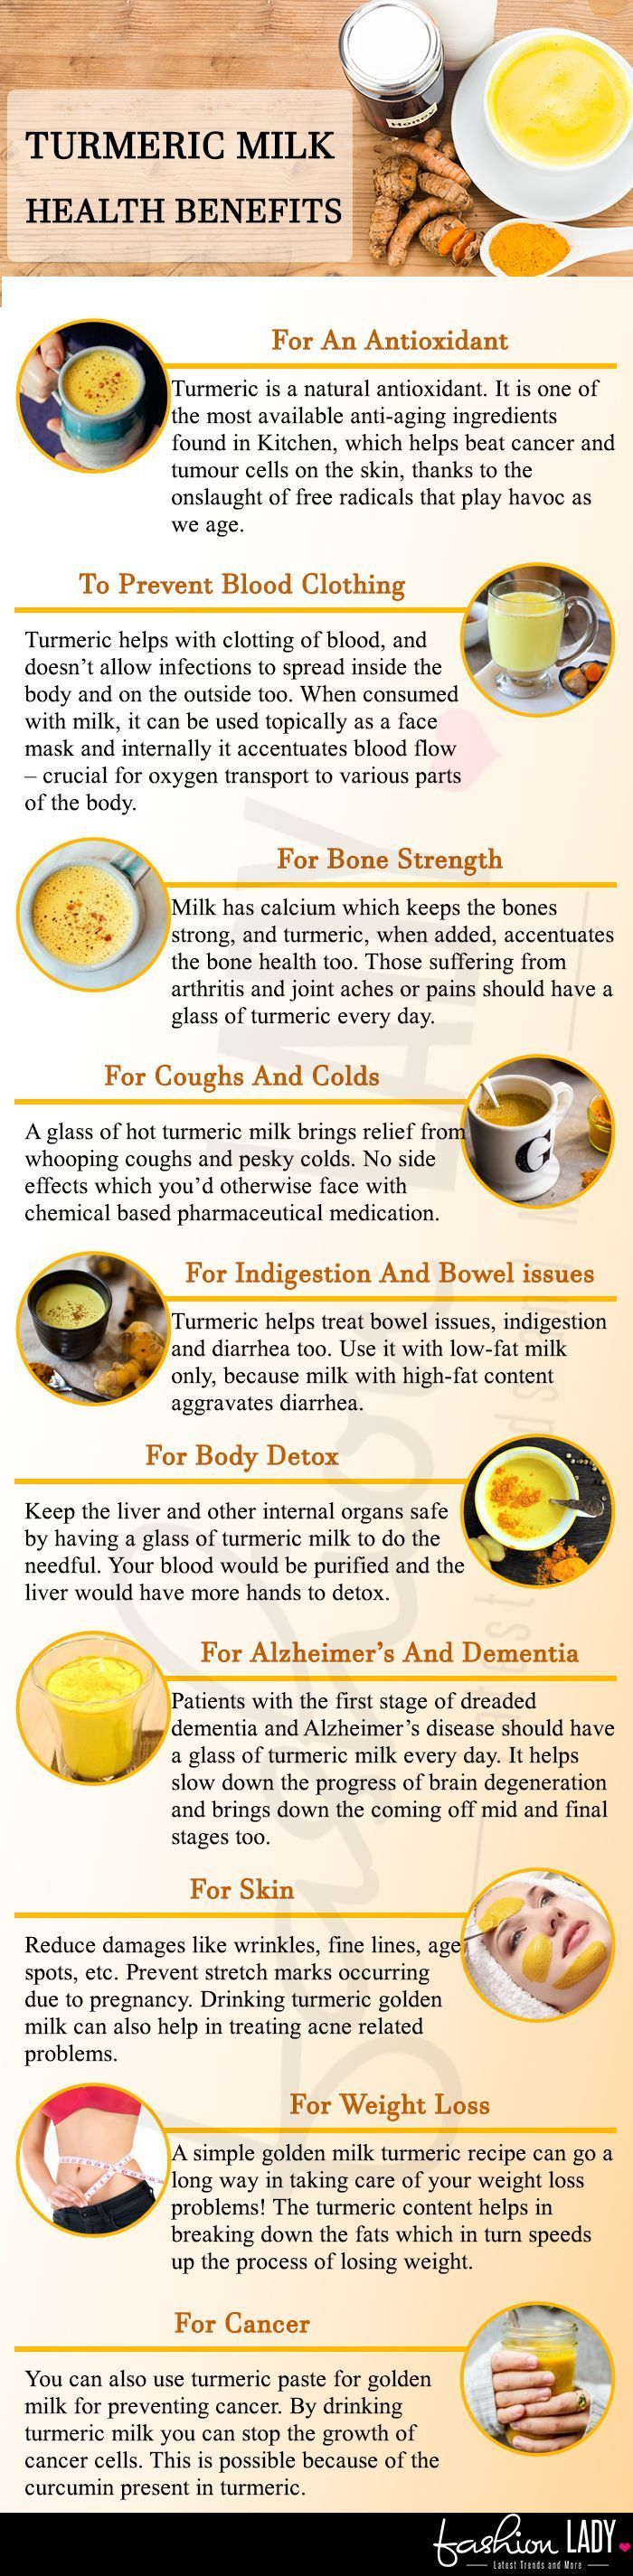 Turmeric Milk Health Benefits